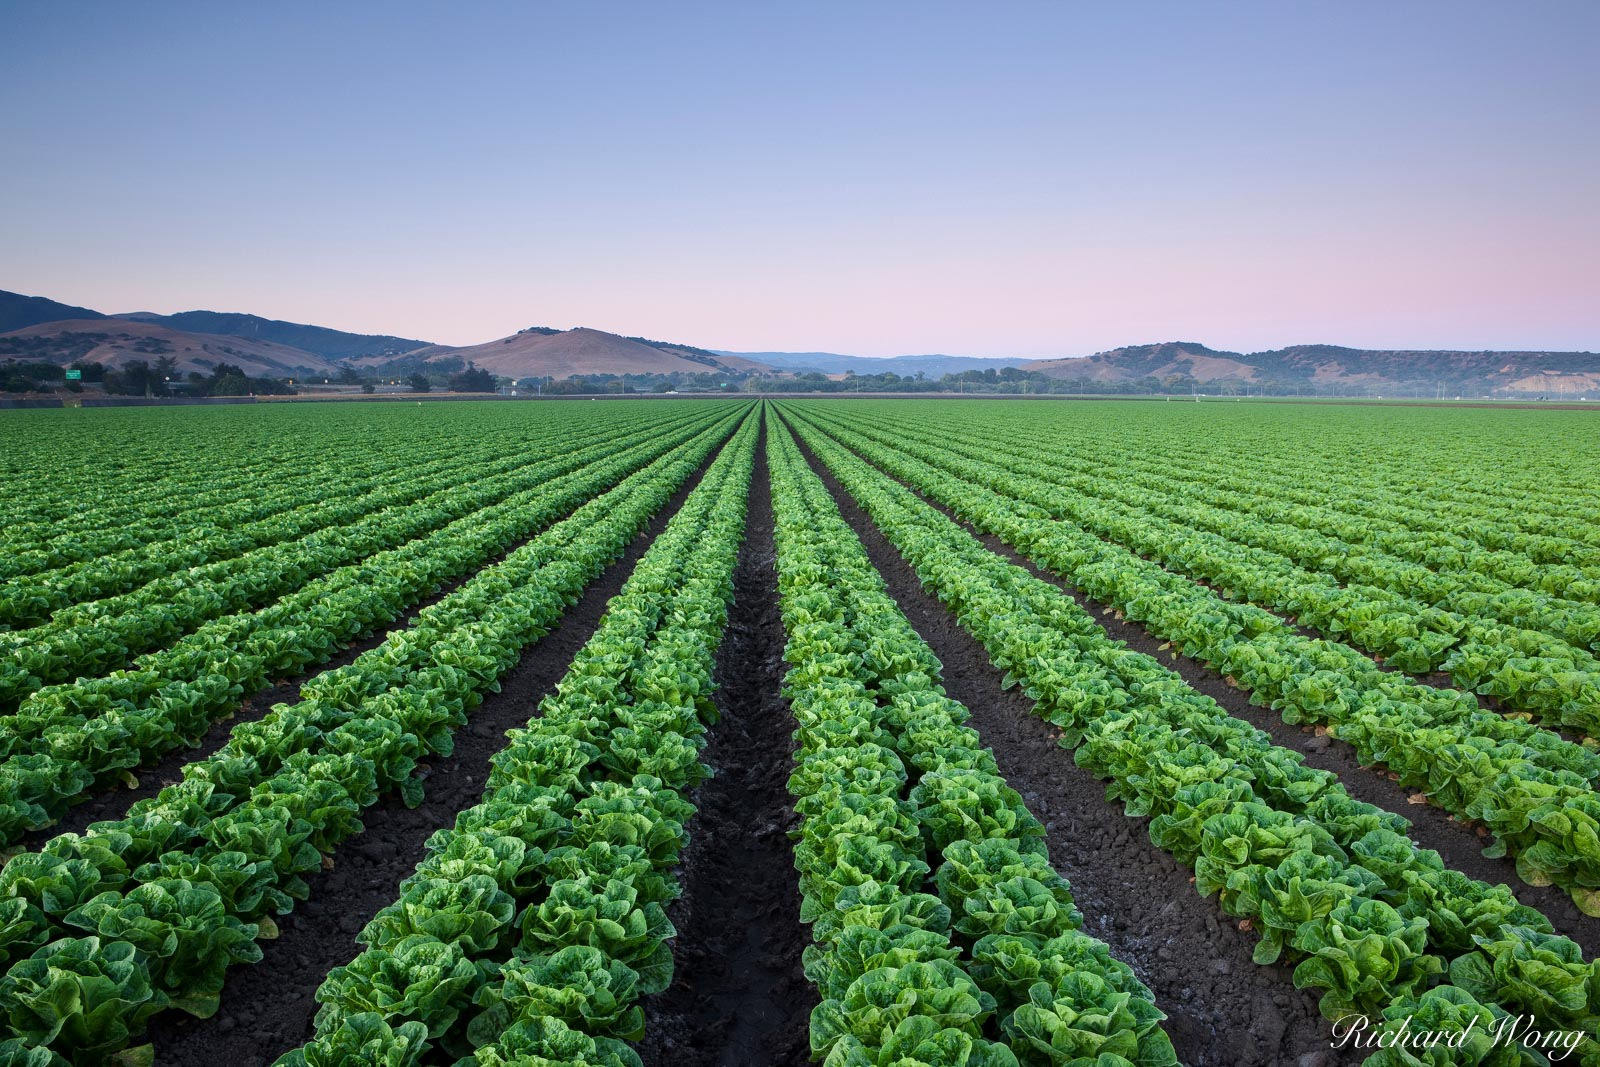 Agriculture Field of Lettuce Crops, Salinas, California, photo, photo